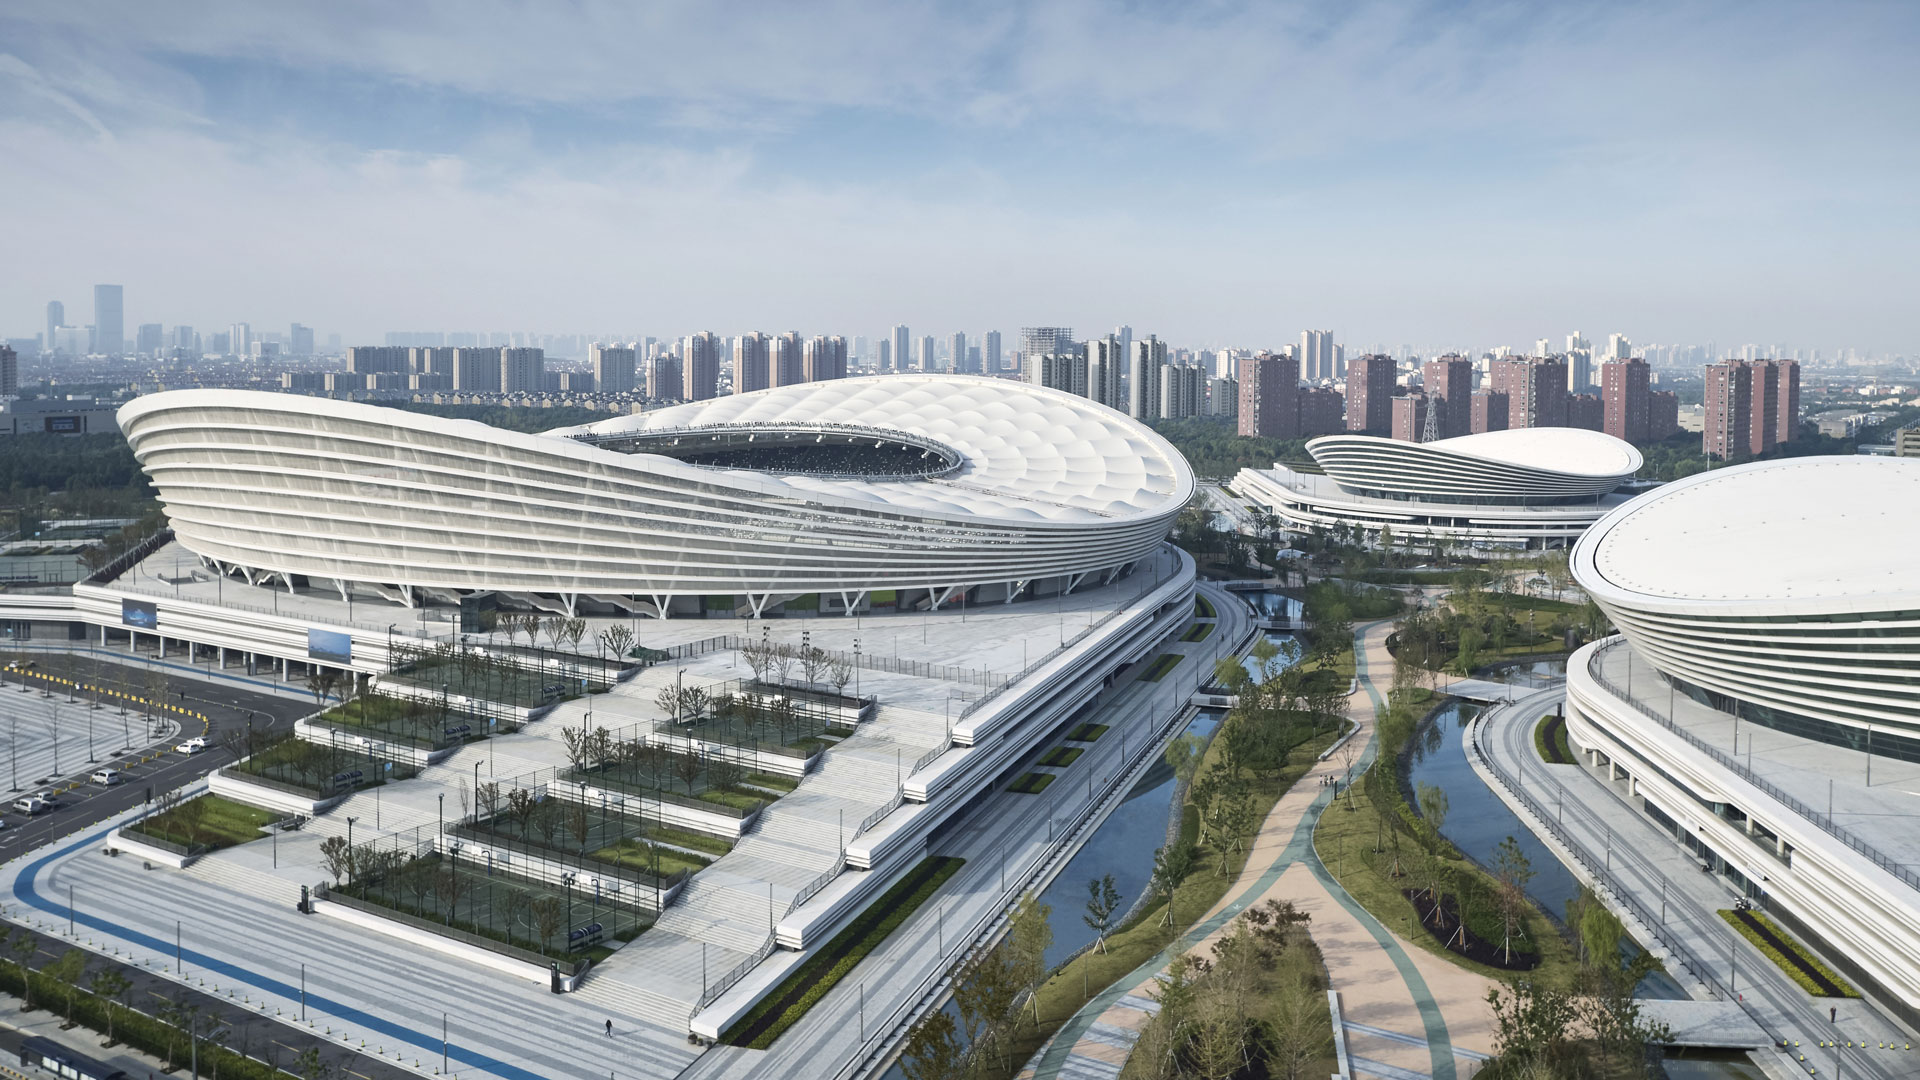 Olympic Sports Center In Suzhou China Sport Amp Impianti